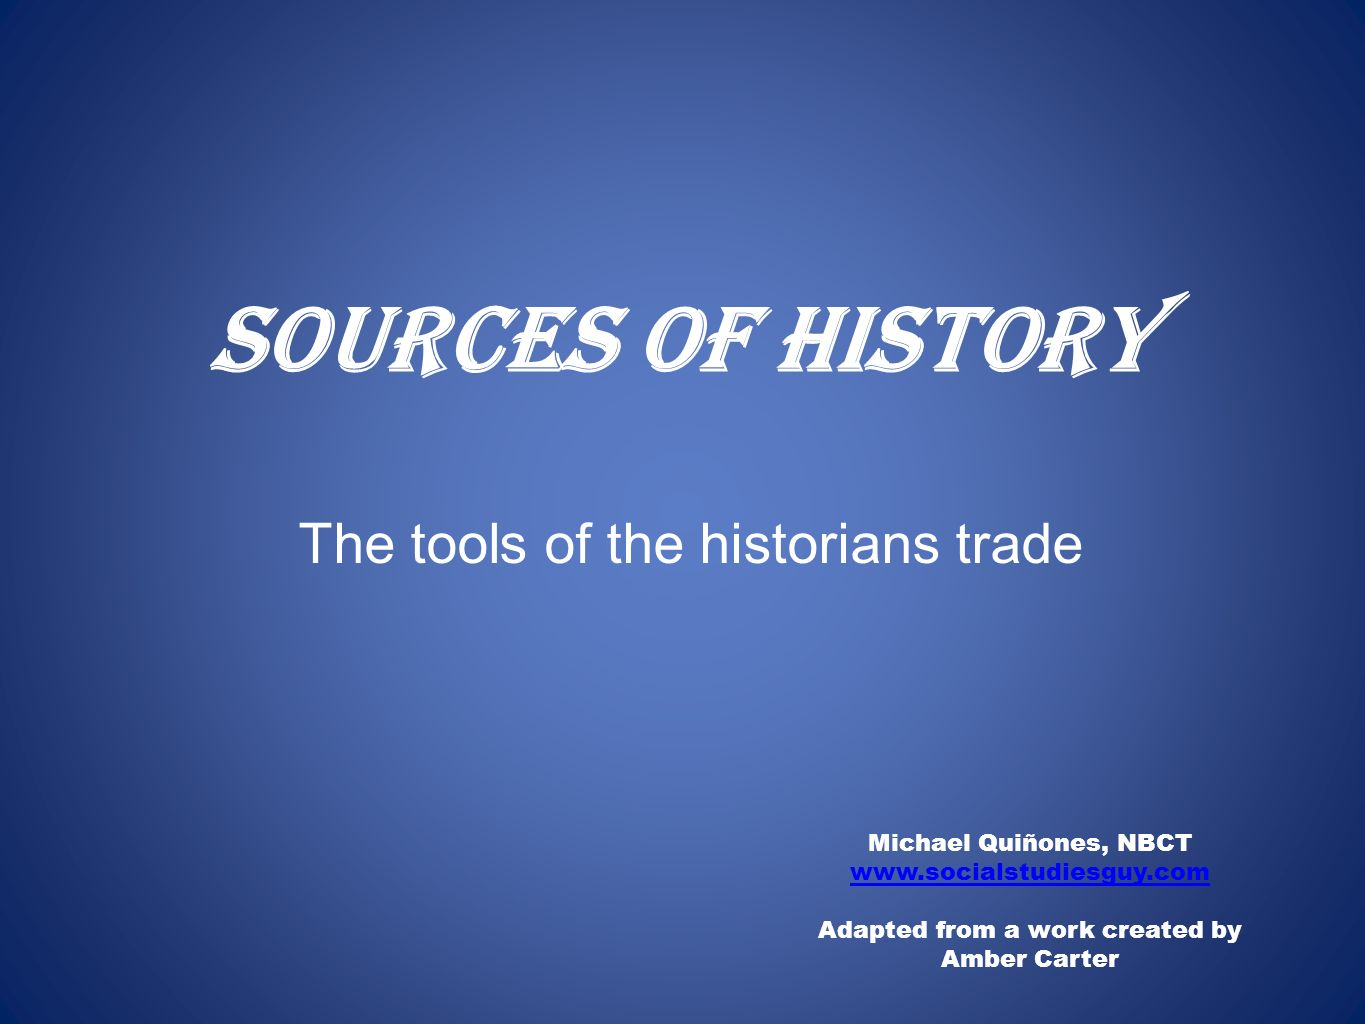 Sources of History Michael Quiñones, NBCT www.socialstudiesguy.com Adapted from a work created by Amber Carter The tools of the historians trade